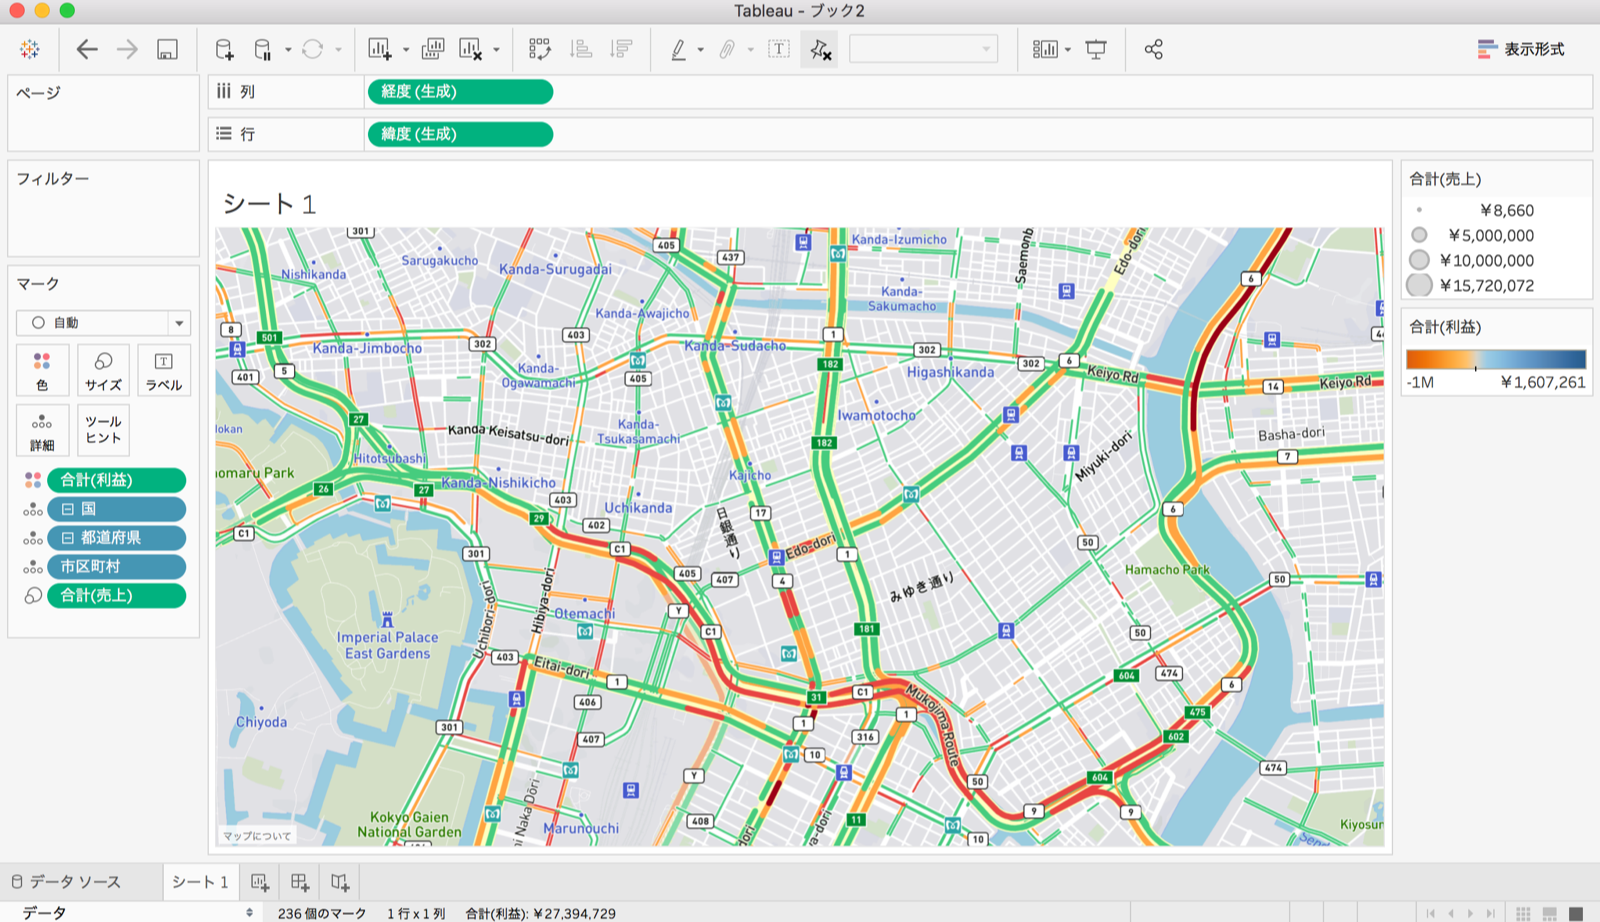 tableau-mapbox-traffic-map-is-available_11